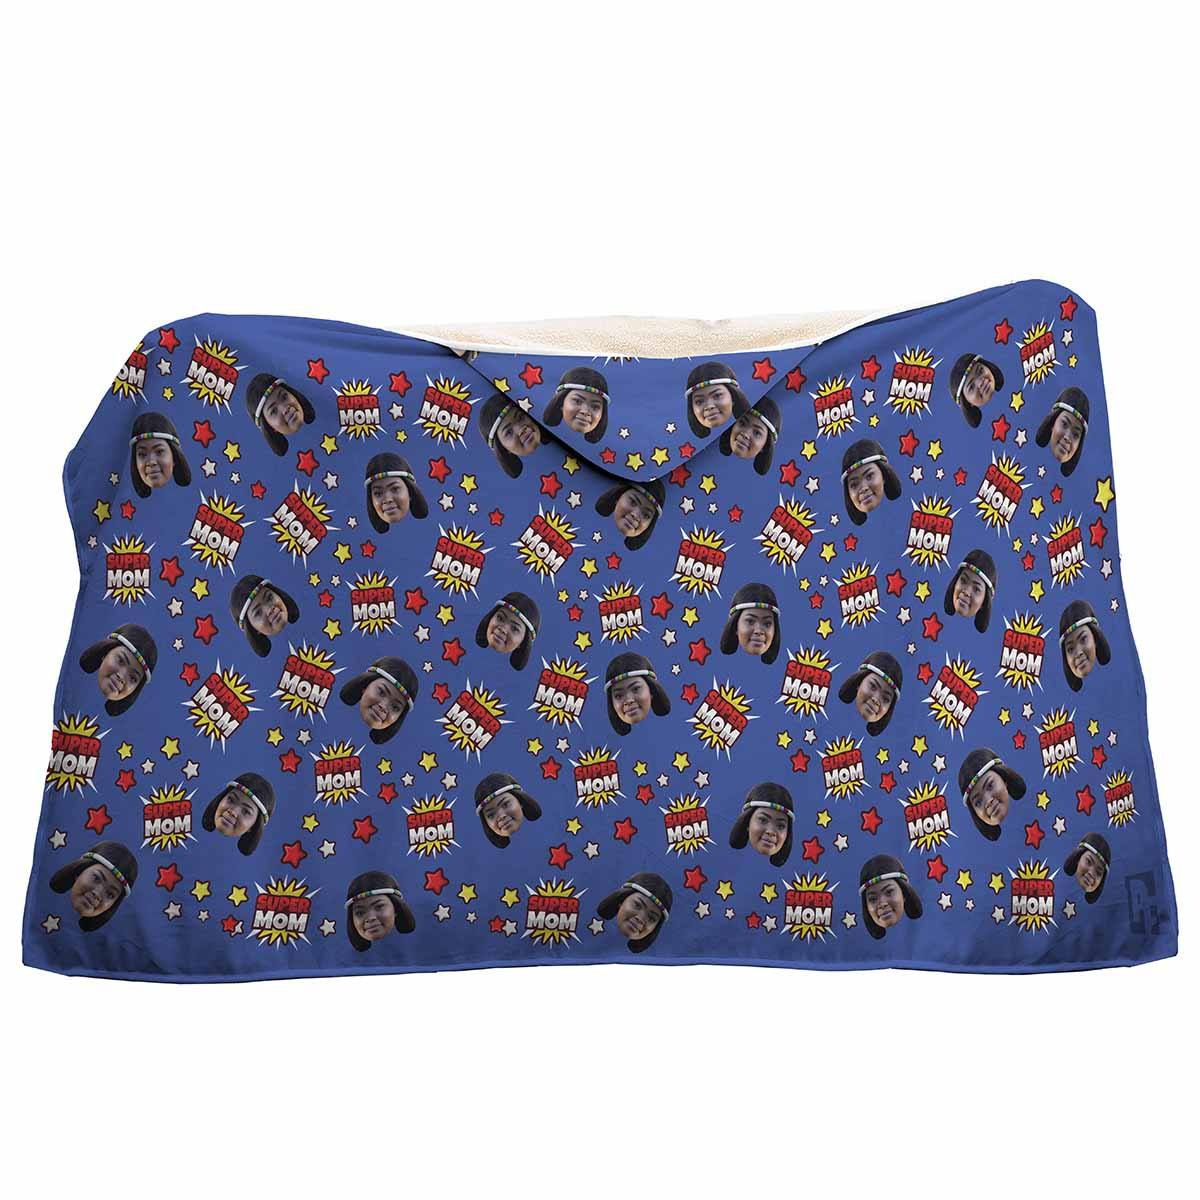 darkblue Super Mom hooded blanket personalized with photo of face printed on it